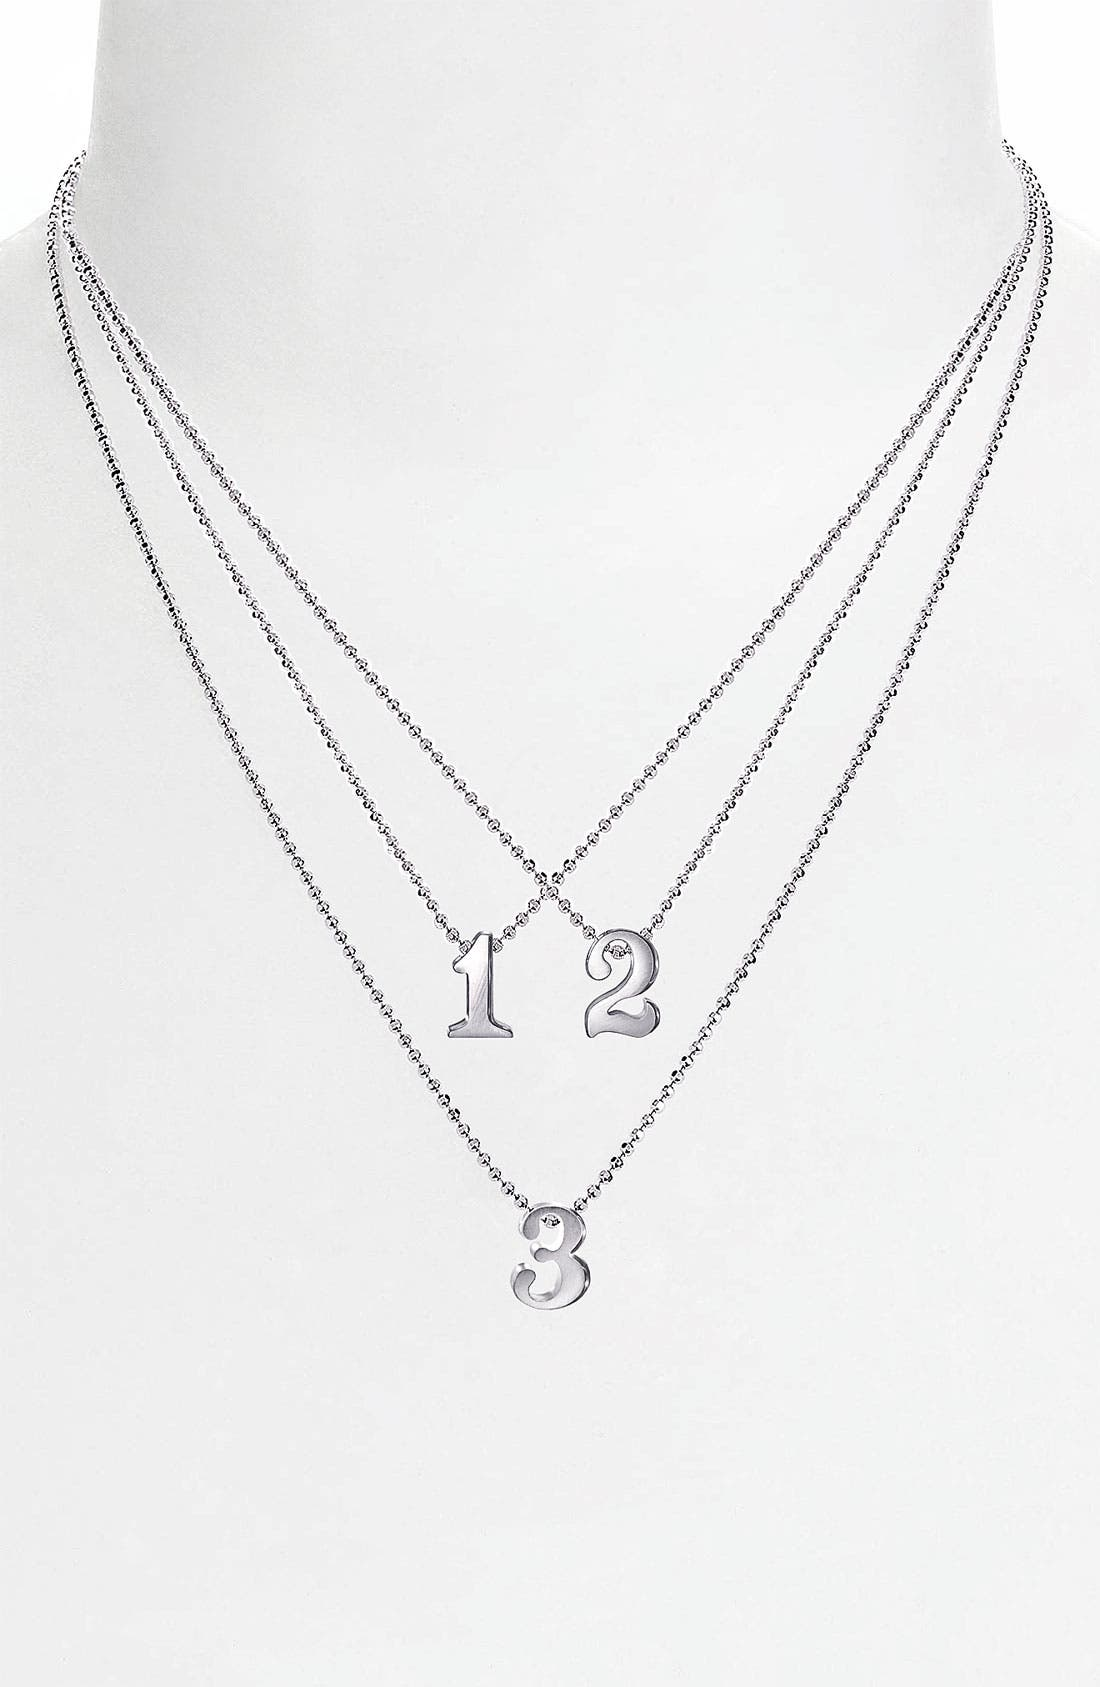 Alternate Image 1 Selected - Alex Woo 'Little Numbers' Pendant Necklace